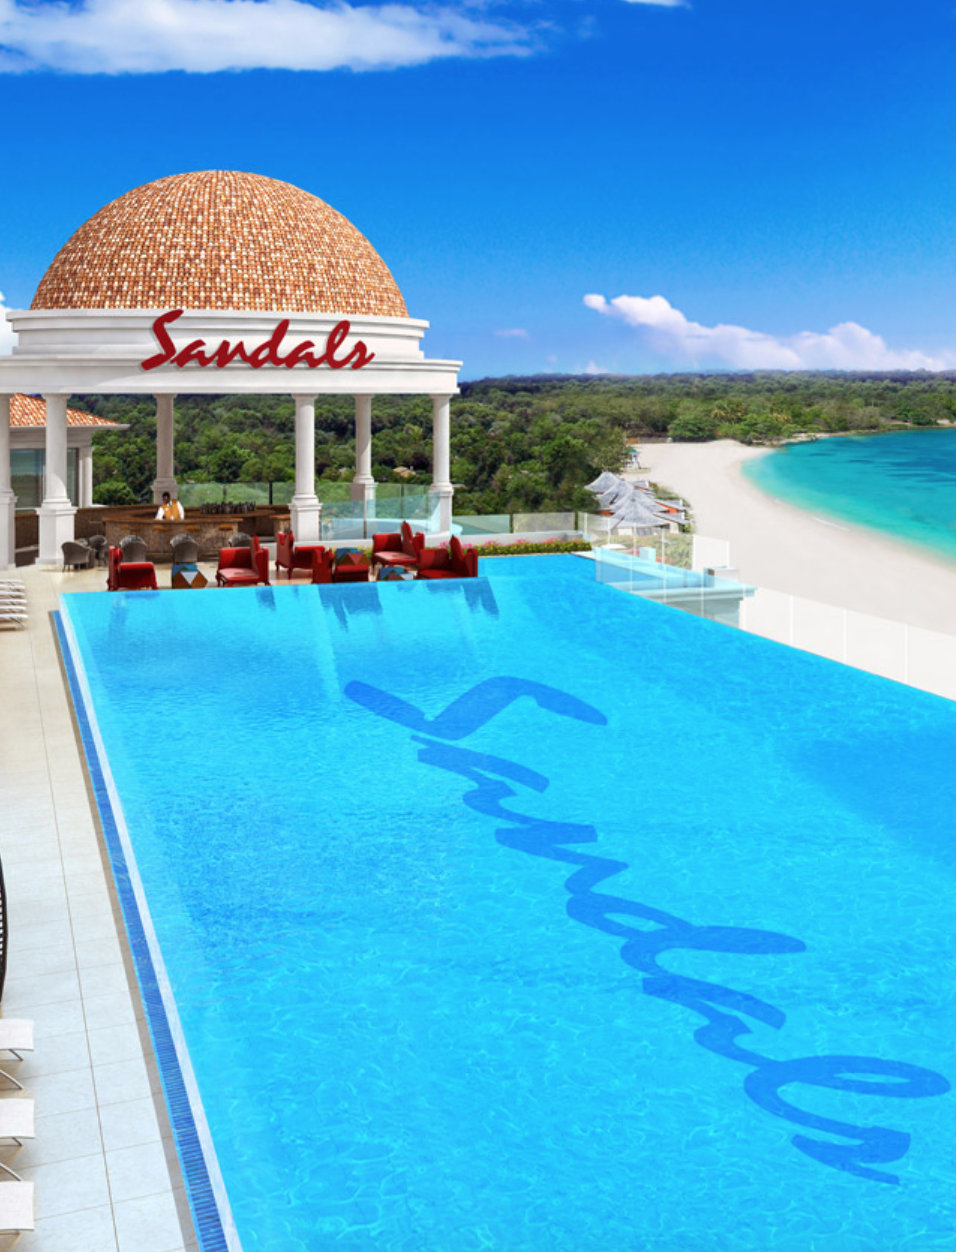 d103a60d50507 Sandals Royal Barbados Roof Top Infinity Pool - Barbados - Caribbean Travel